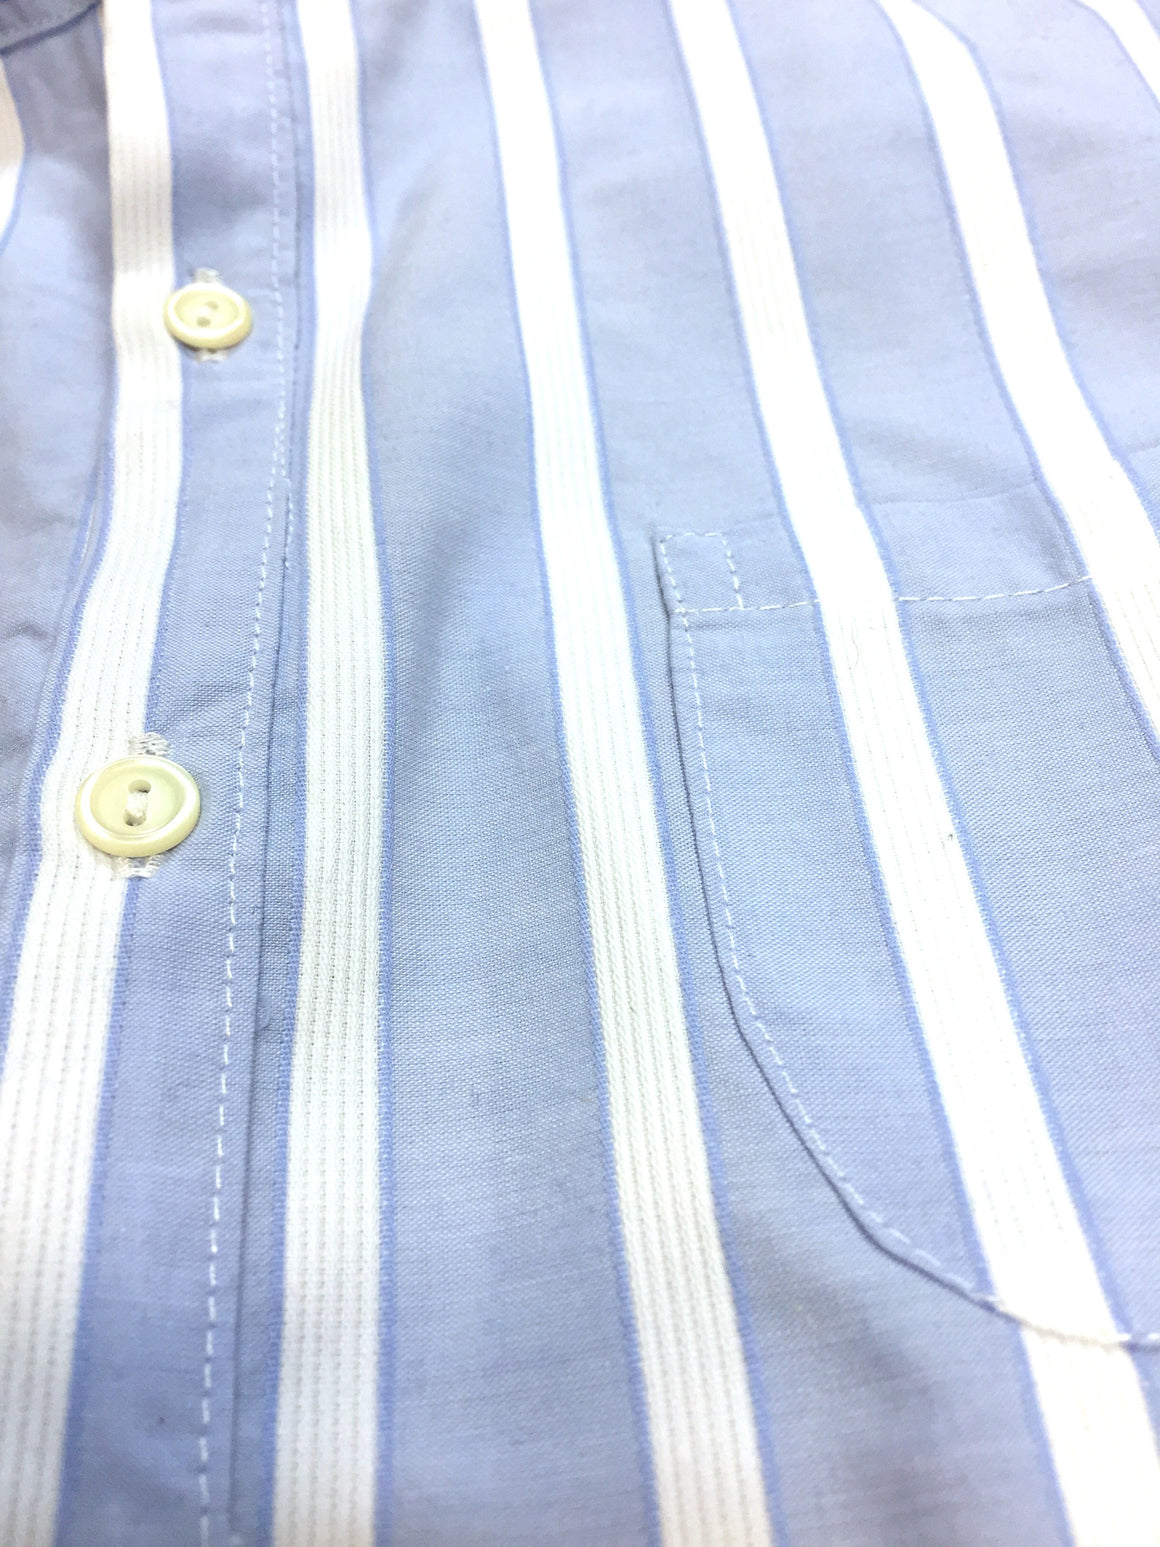 bisbiz.com AMAIA Powder Blue/White Striped Boys' Shirt w/Mandarin Collar & Cuffs - Bis Luxury Resale